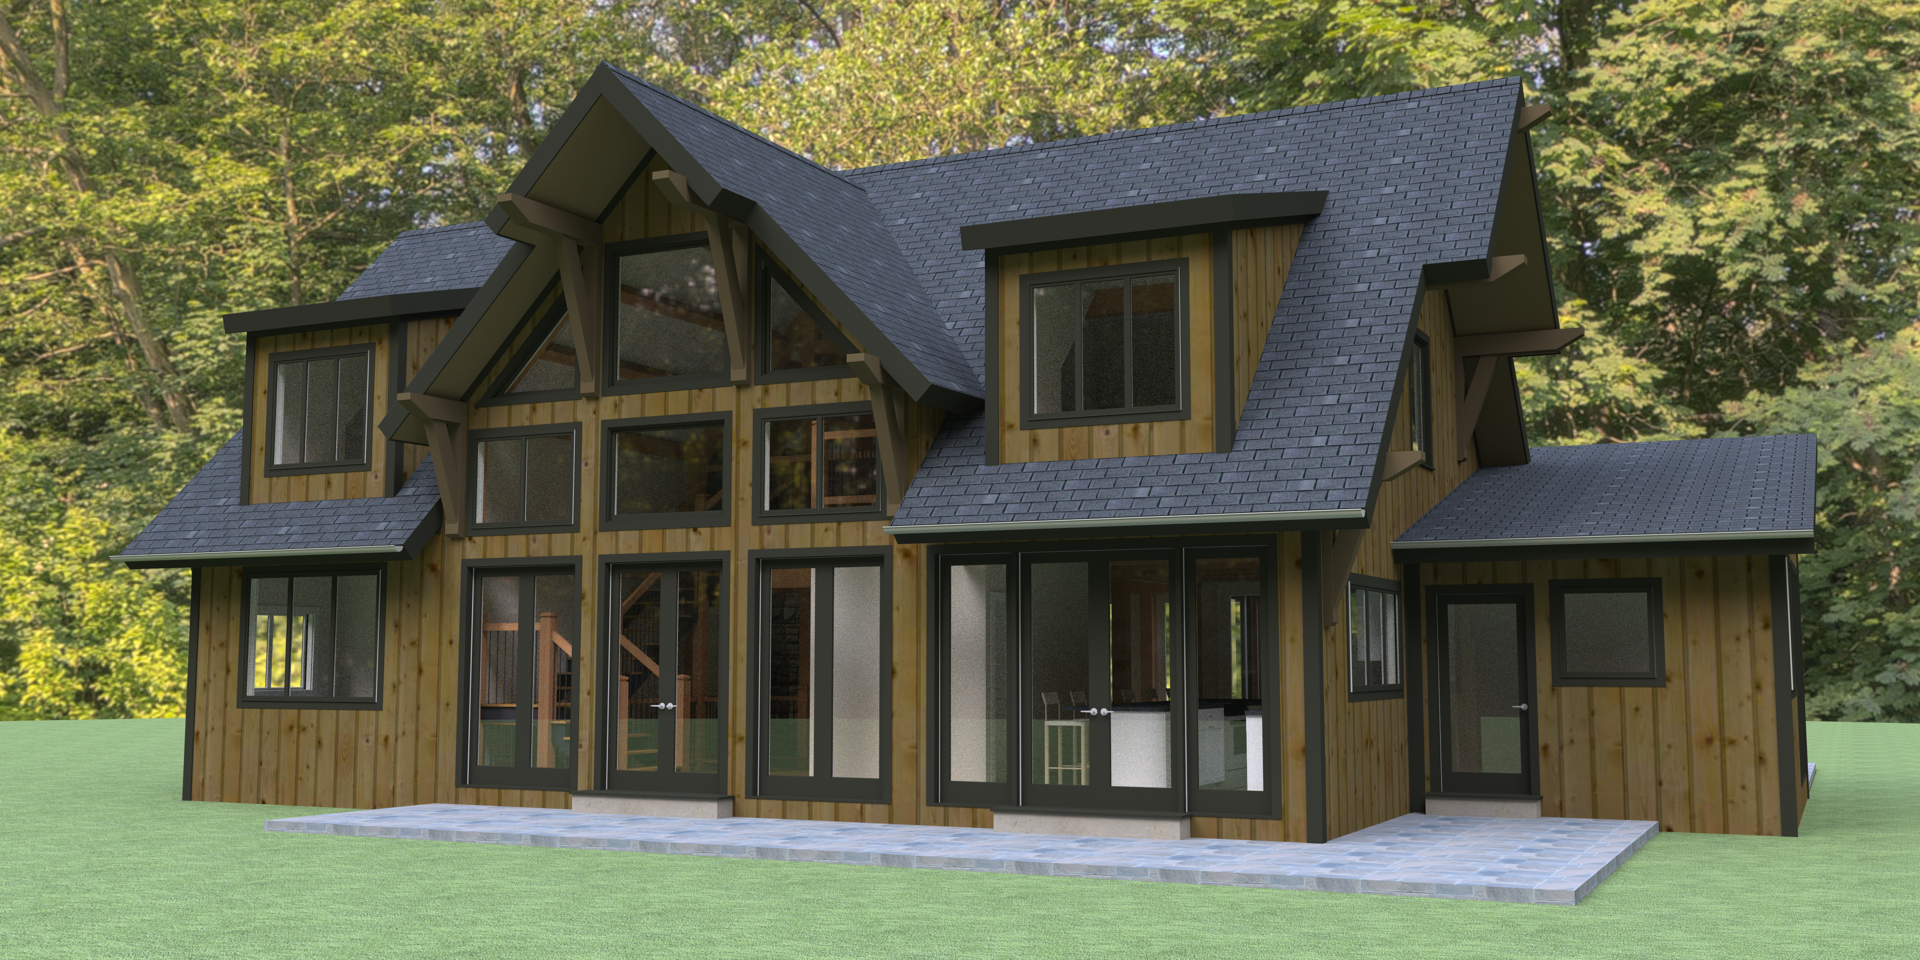 Grand view model by mid atlantic timberframes for Prow front home plans